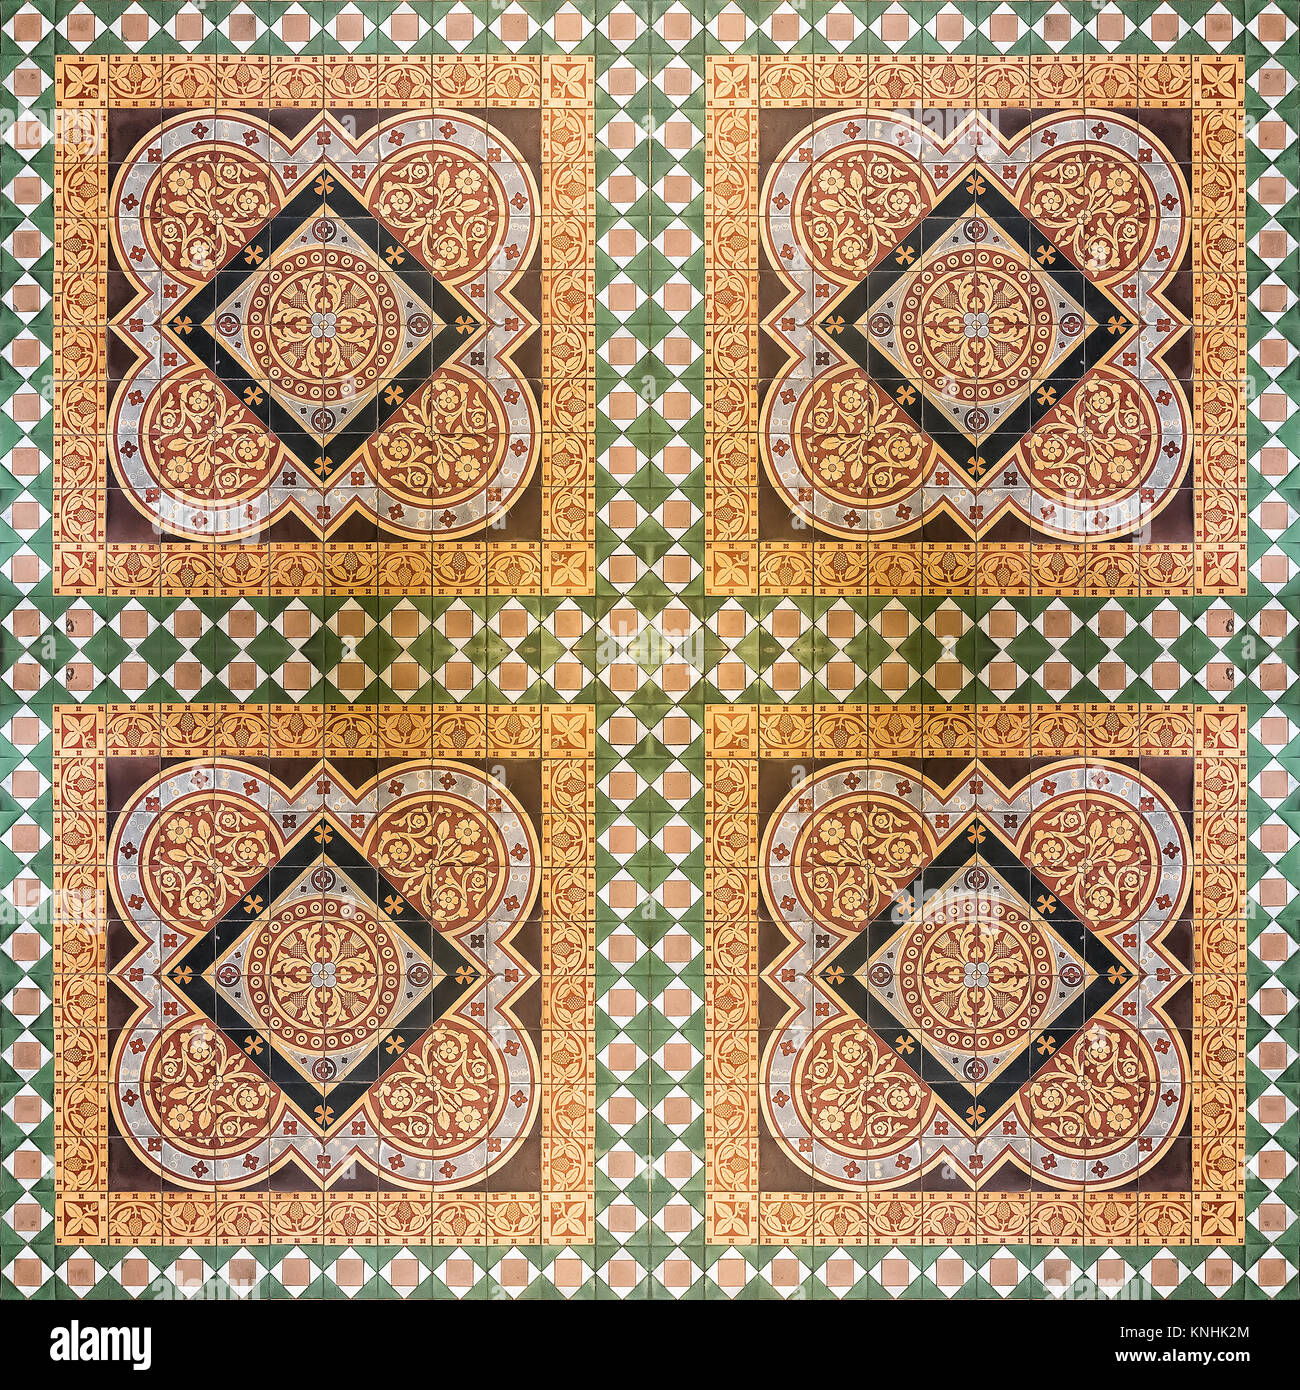 Cool ceramic tiles glasgow contemporary simple design home a seamless background image of patterned ceramic tiles from dailygadgetfo Image collections